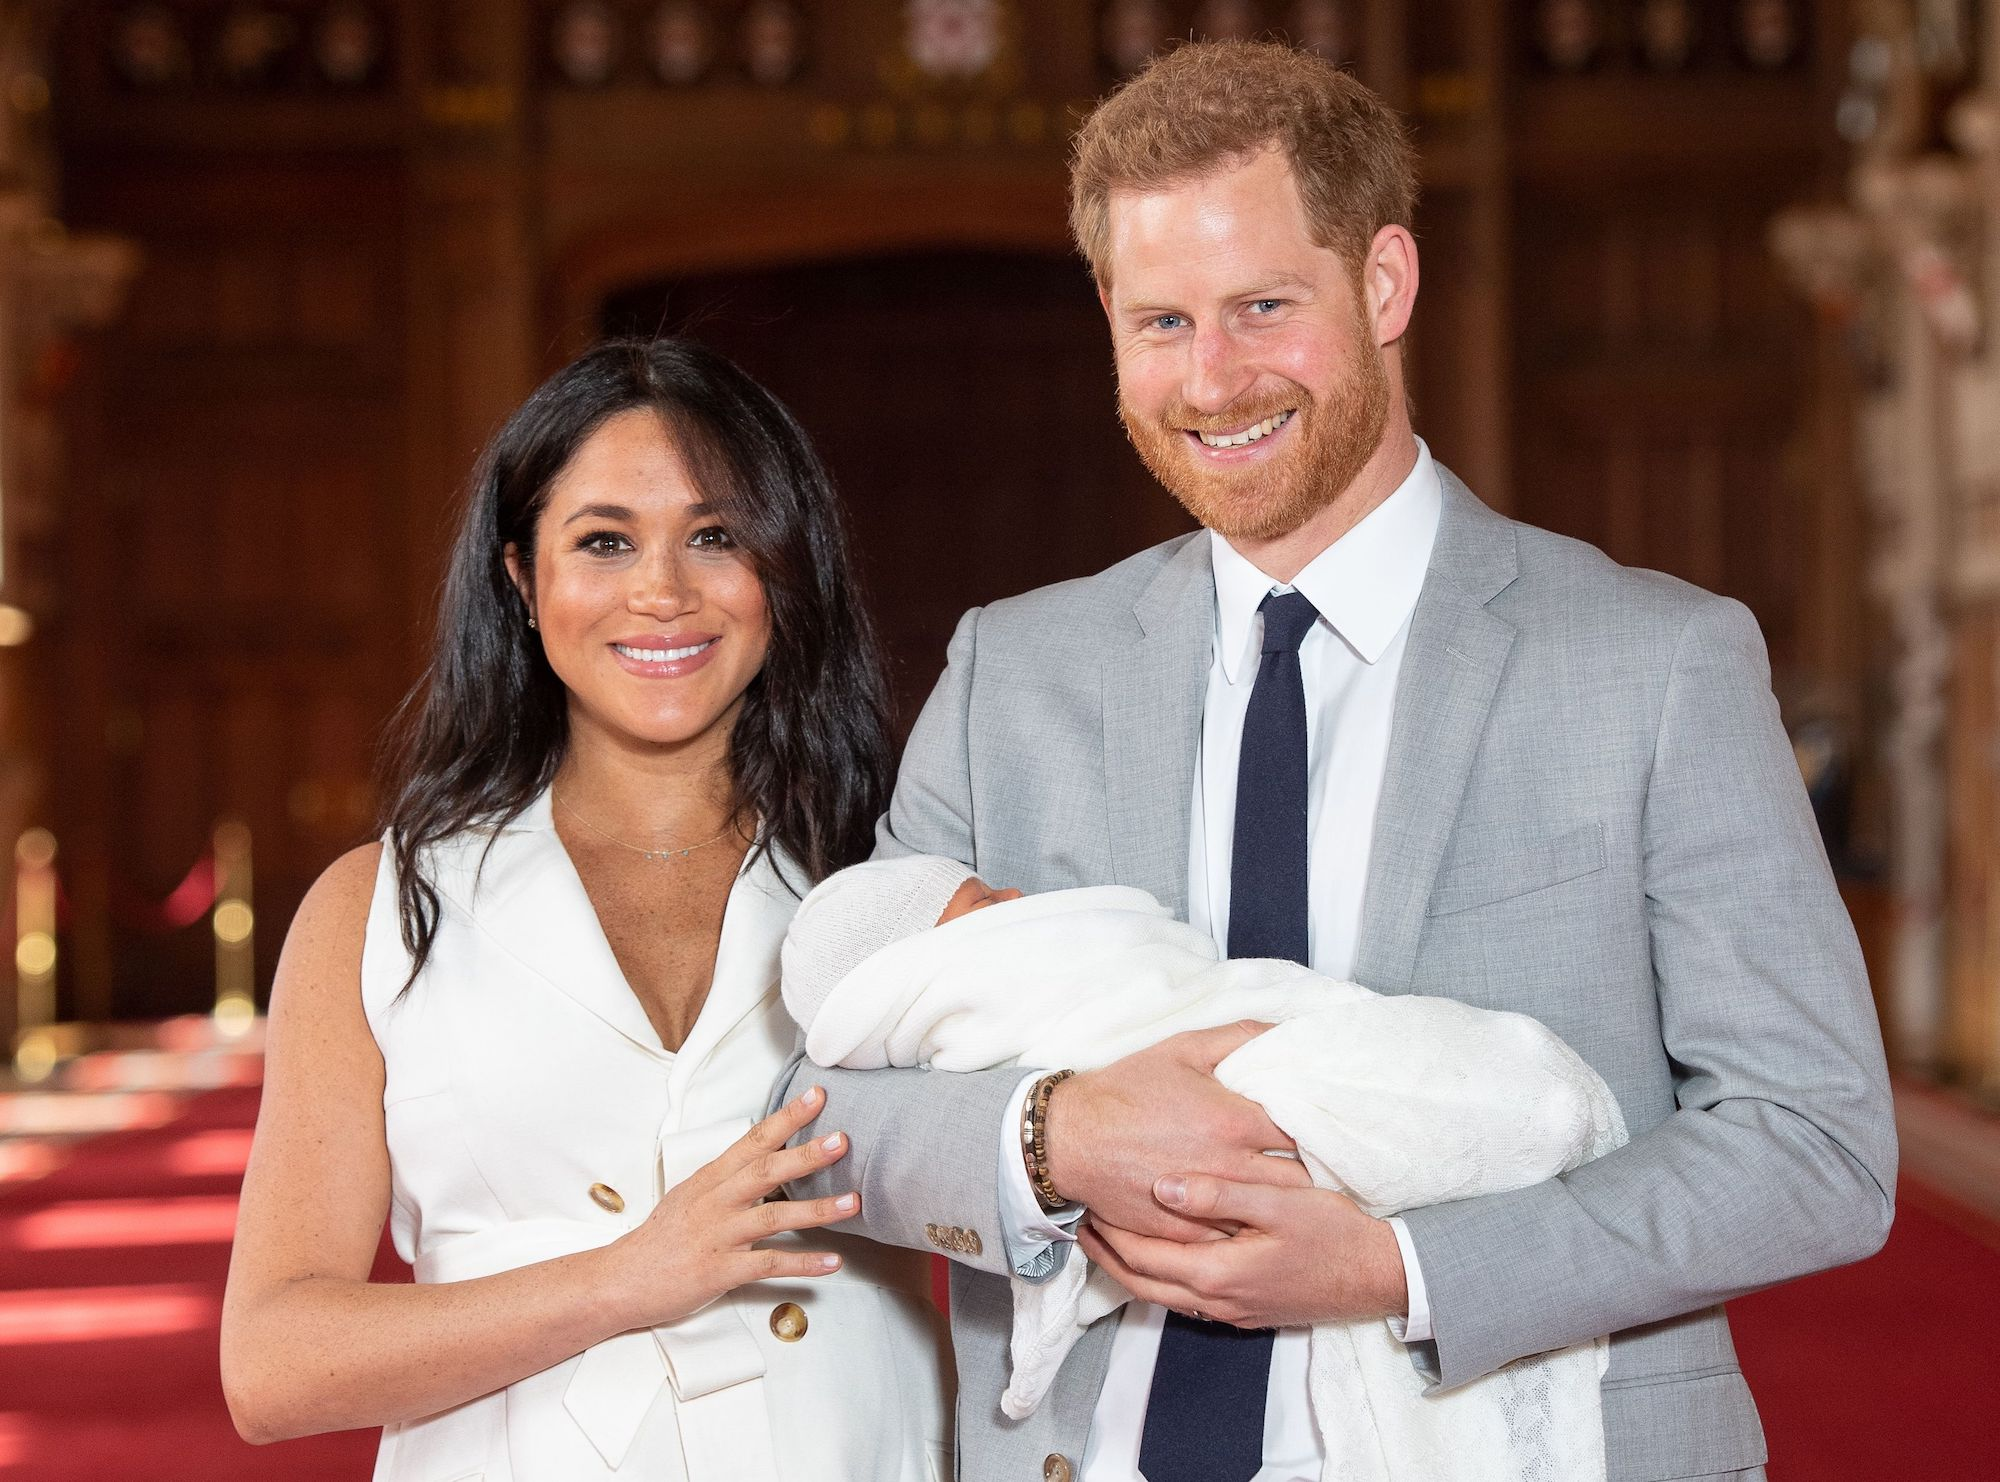 Britain's Prince Harry, Duke of Sussex, and his wife Meghan, Duchess of Sussex, pose for a photo with their newborn baby son on May 8, 2019. (Dominic Lipinski—Getty Images)